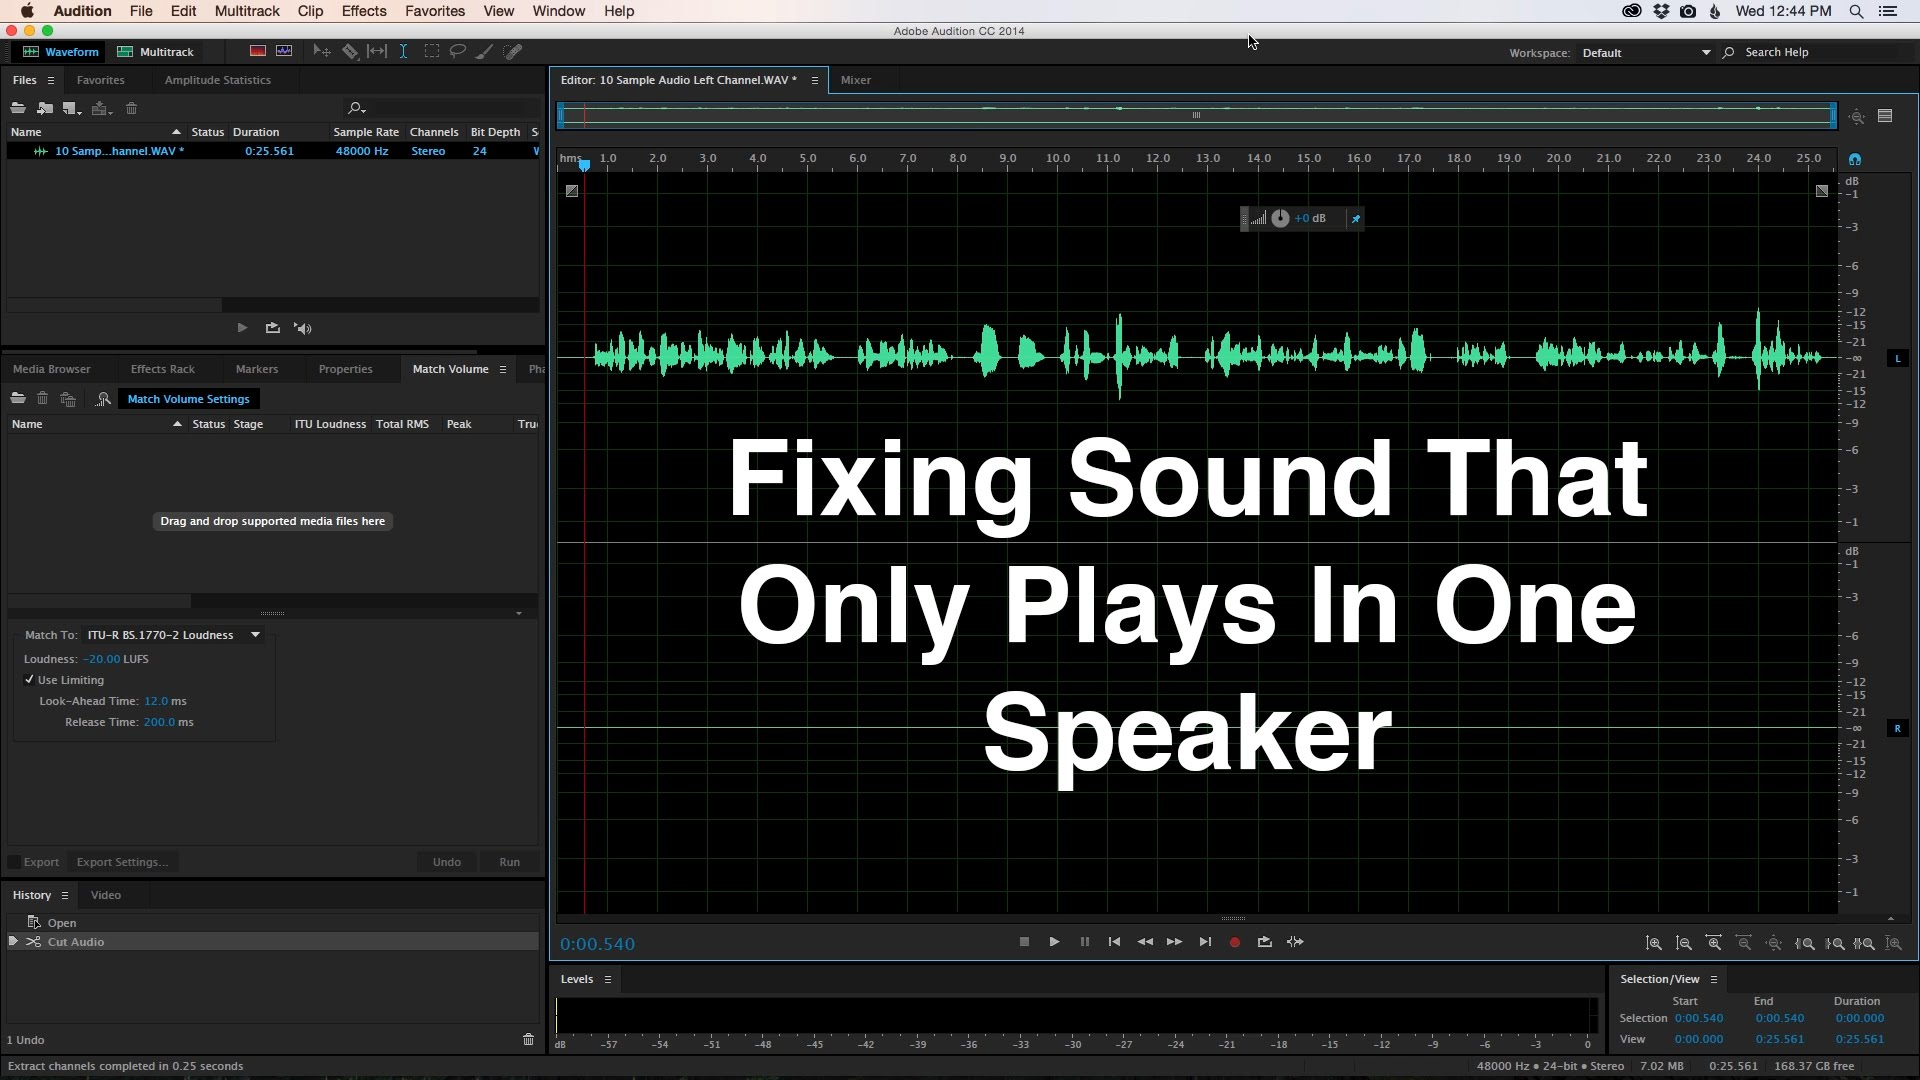 Fixing Sound That Only Plays In One Speaker/Side of a Headphone